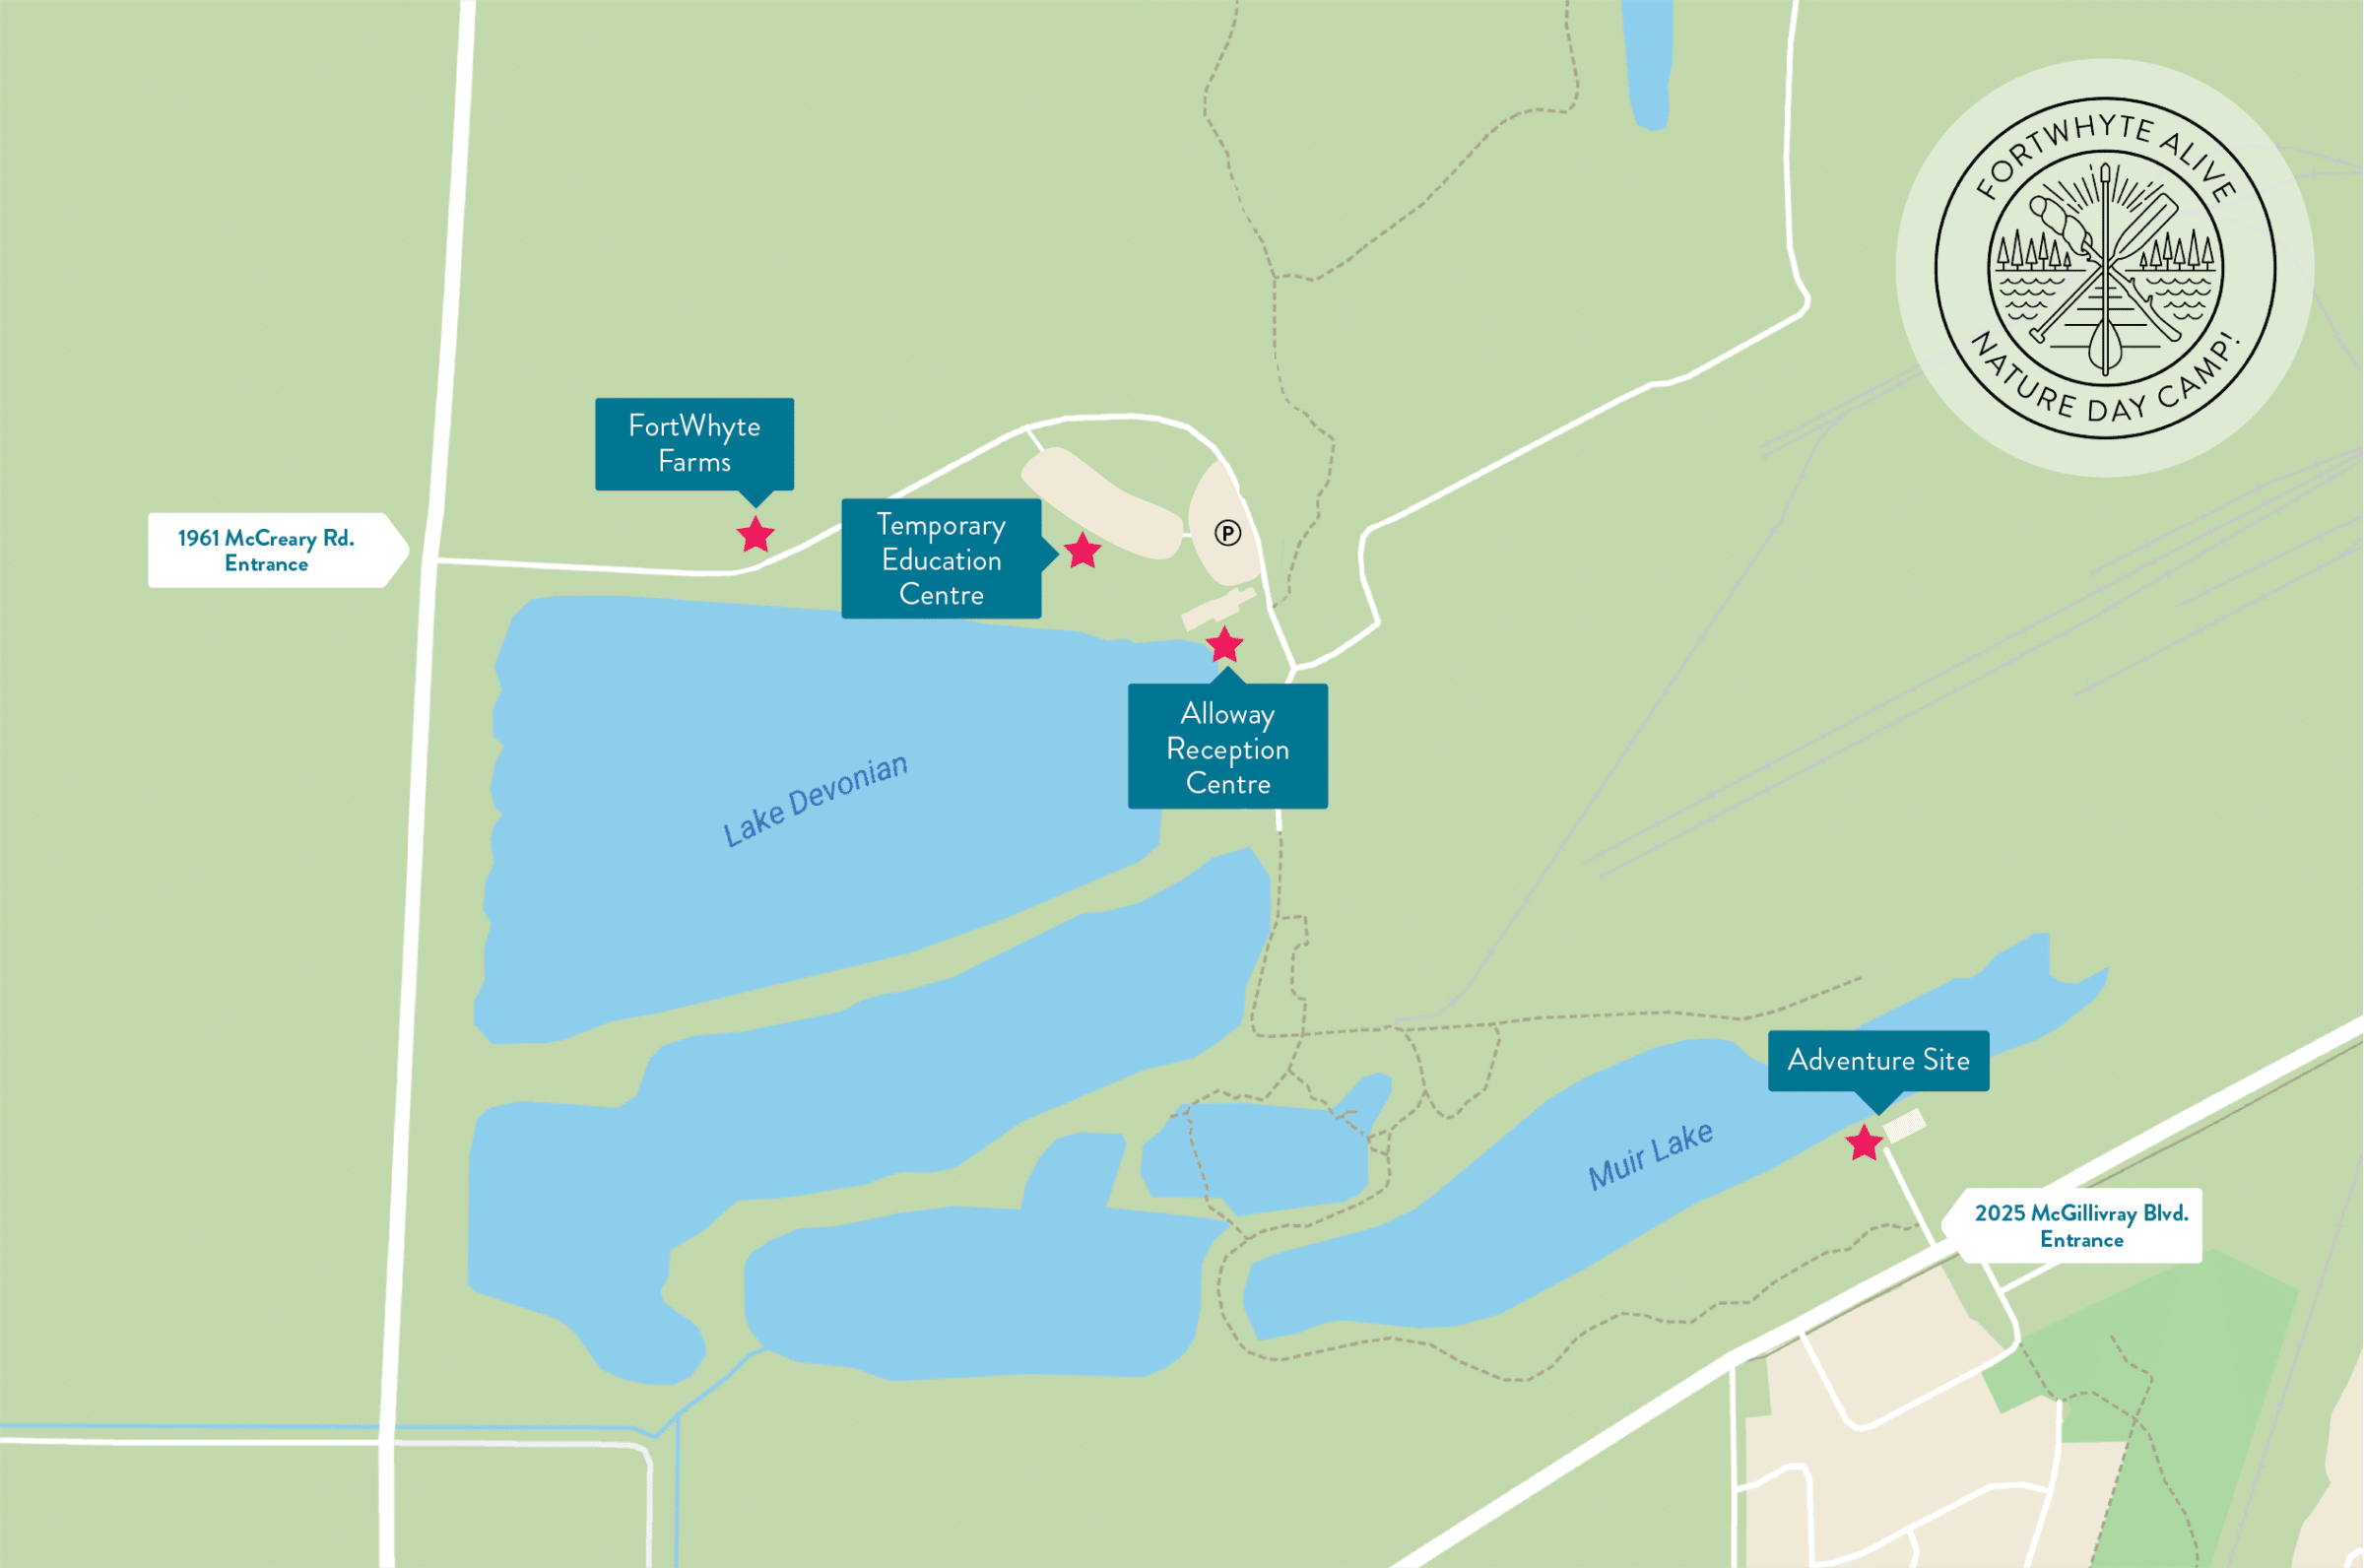 Map of FortWhyte highlighting various drop off points.